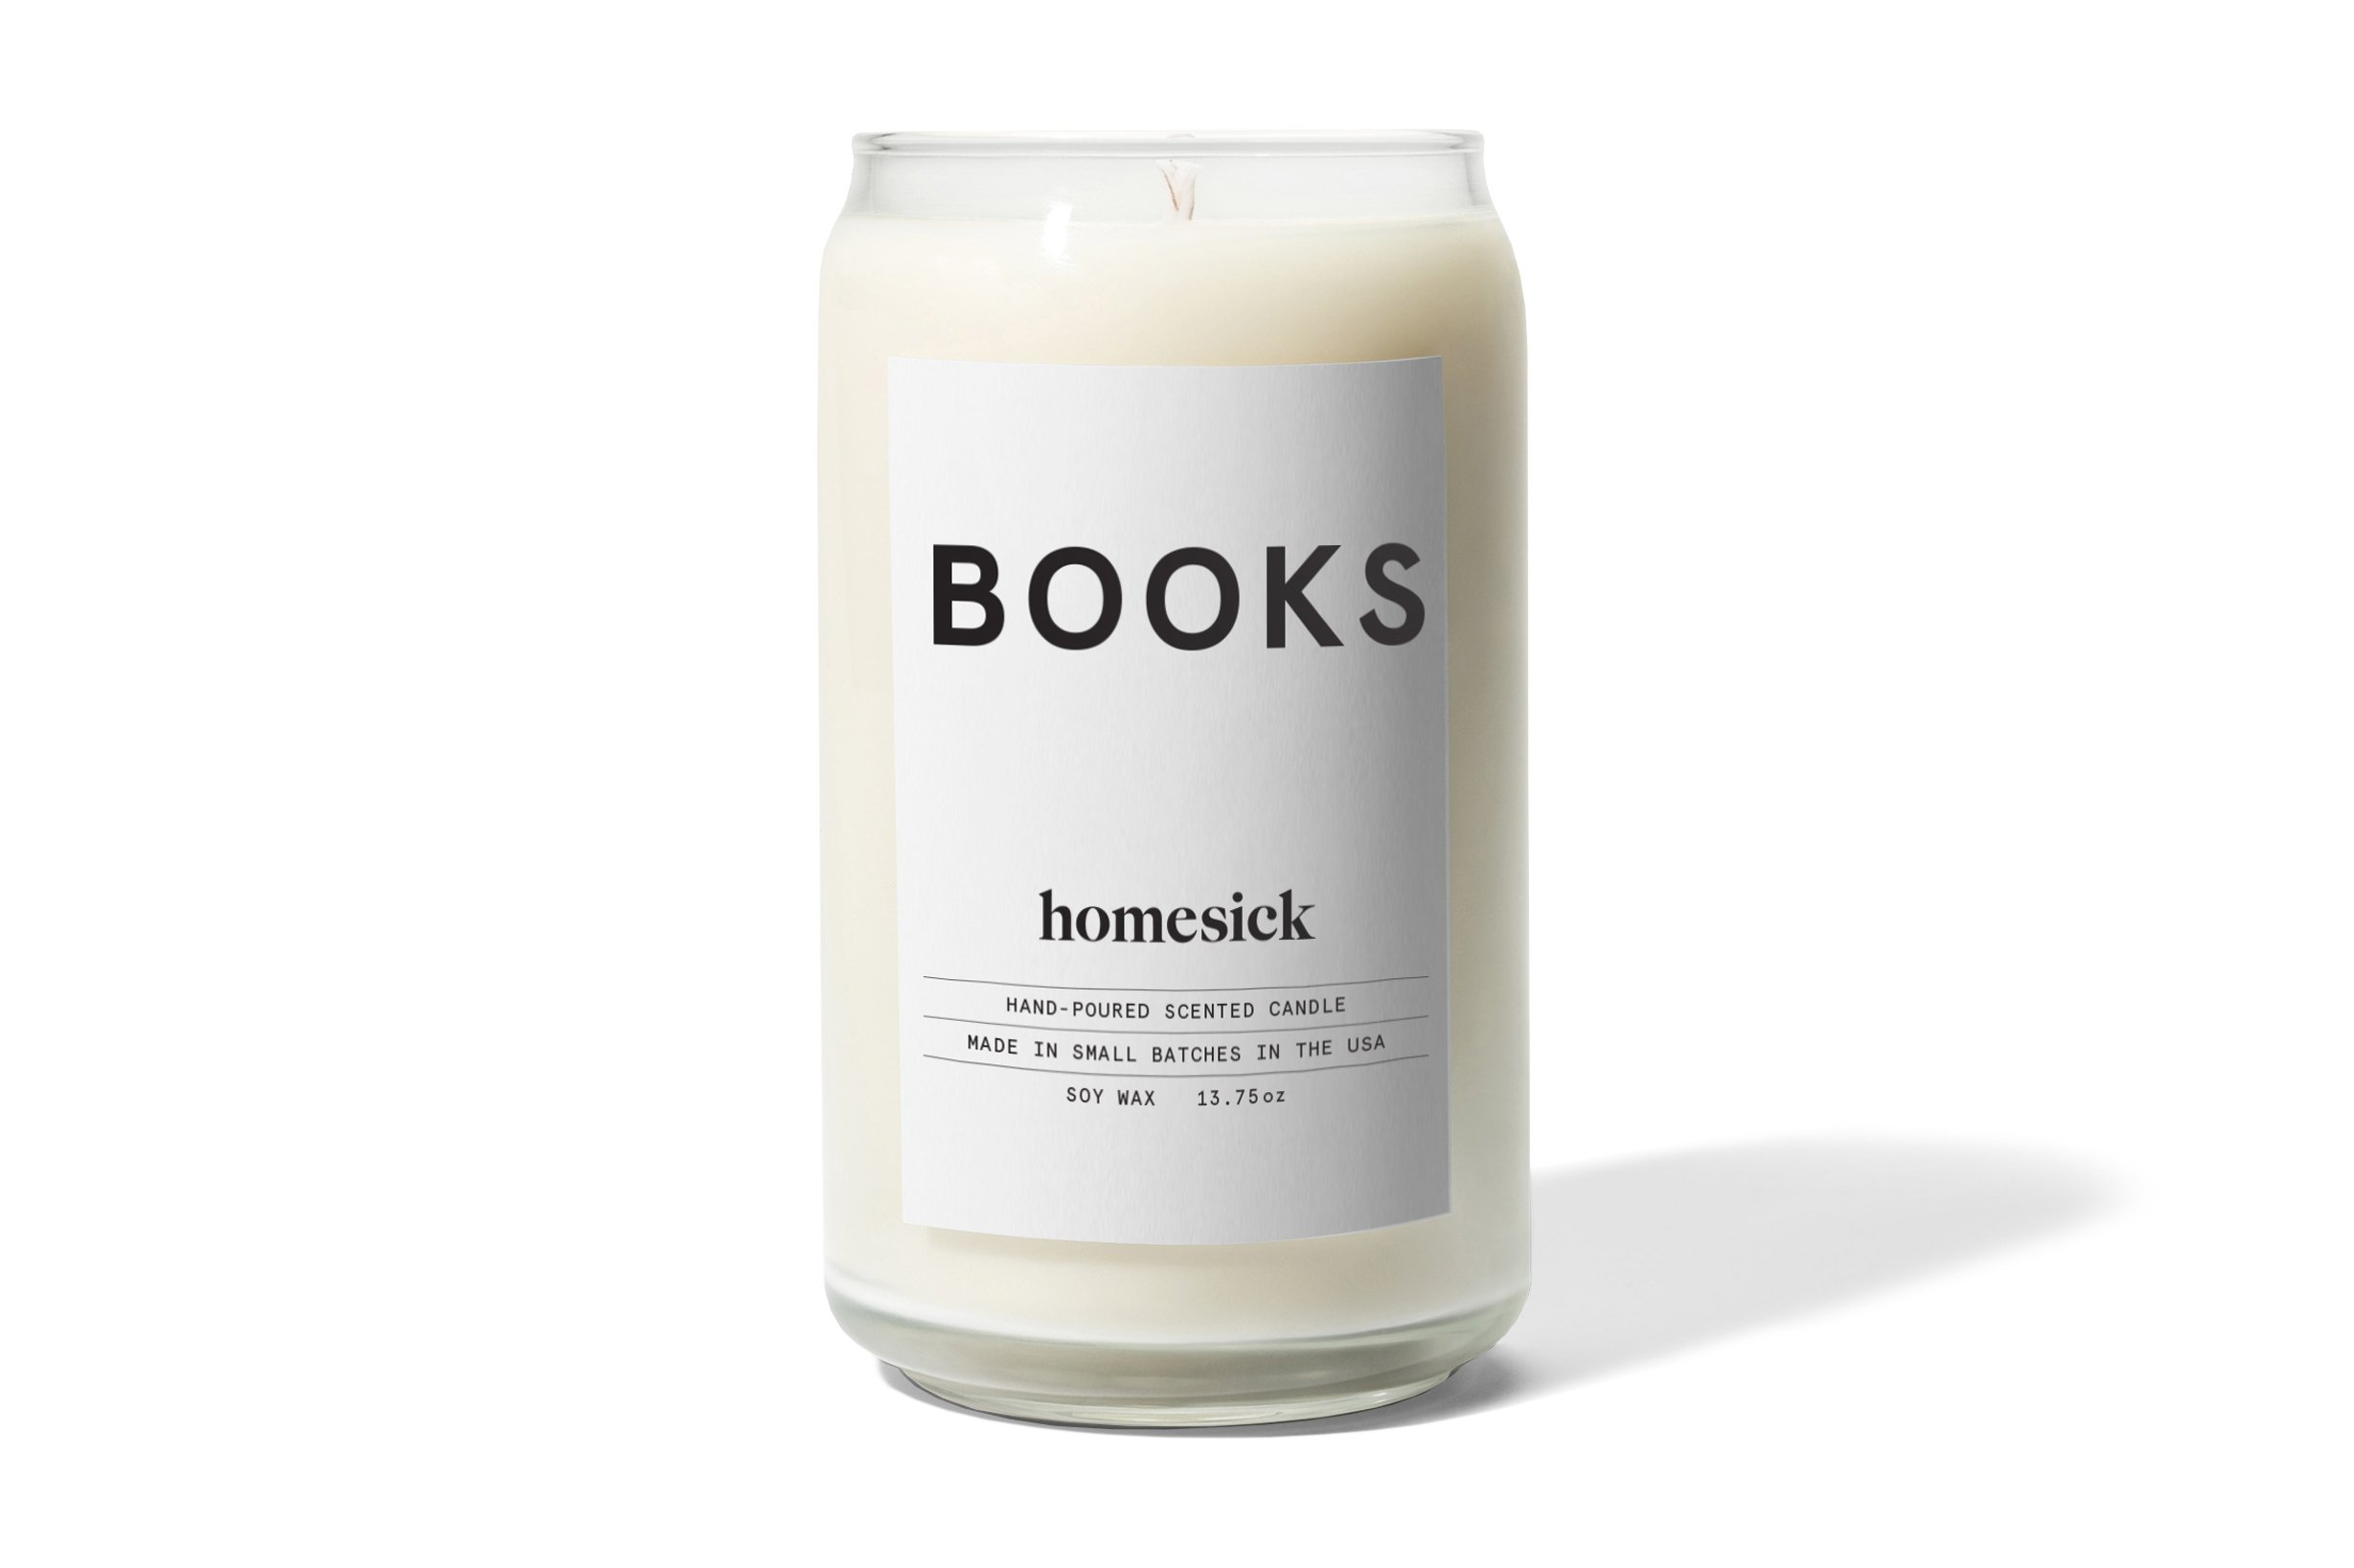 Homesick Scented Candle, Books by Homesick